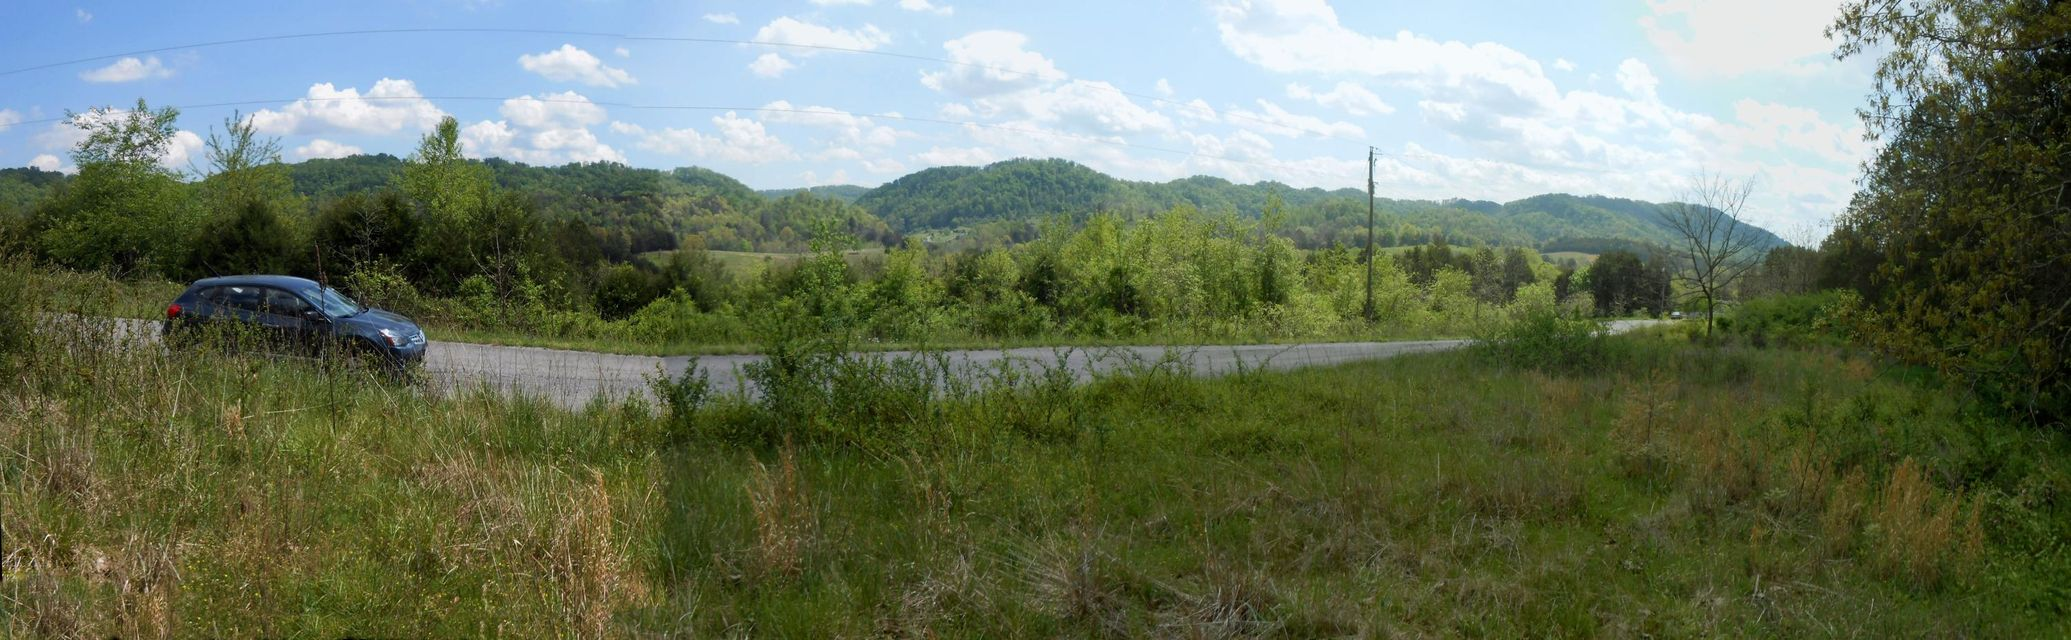 Additional photo for property listing at Wild Turkey Lane Wild Turkey Lane Maynardville, Tennessee 37807 États-Unis